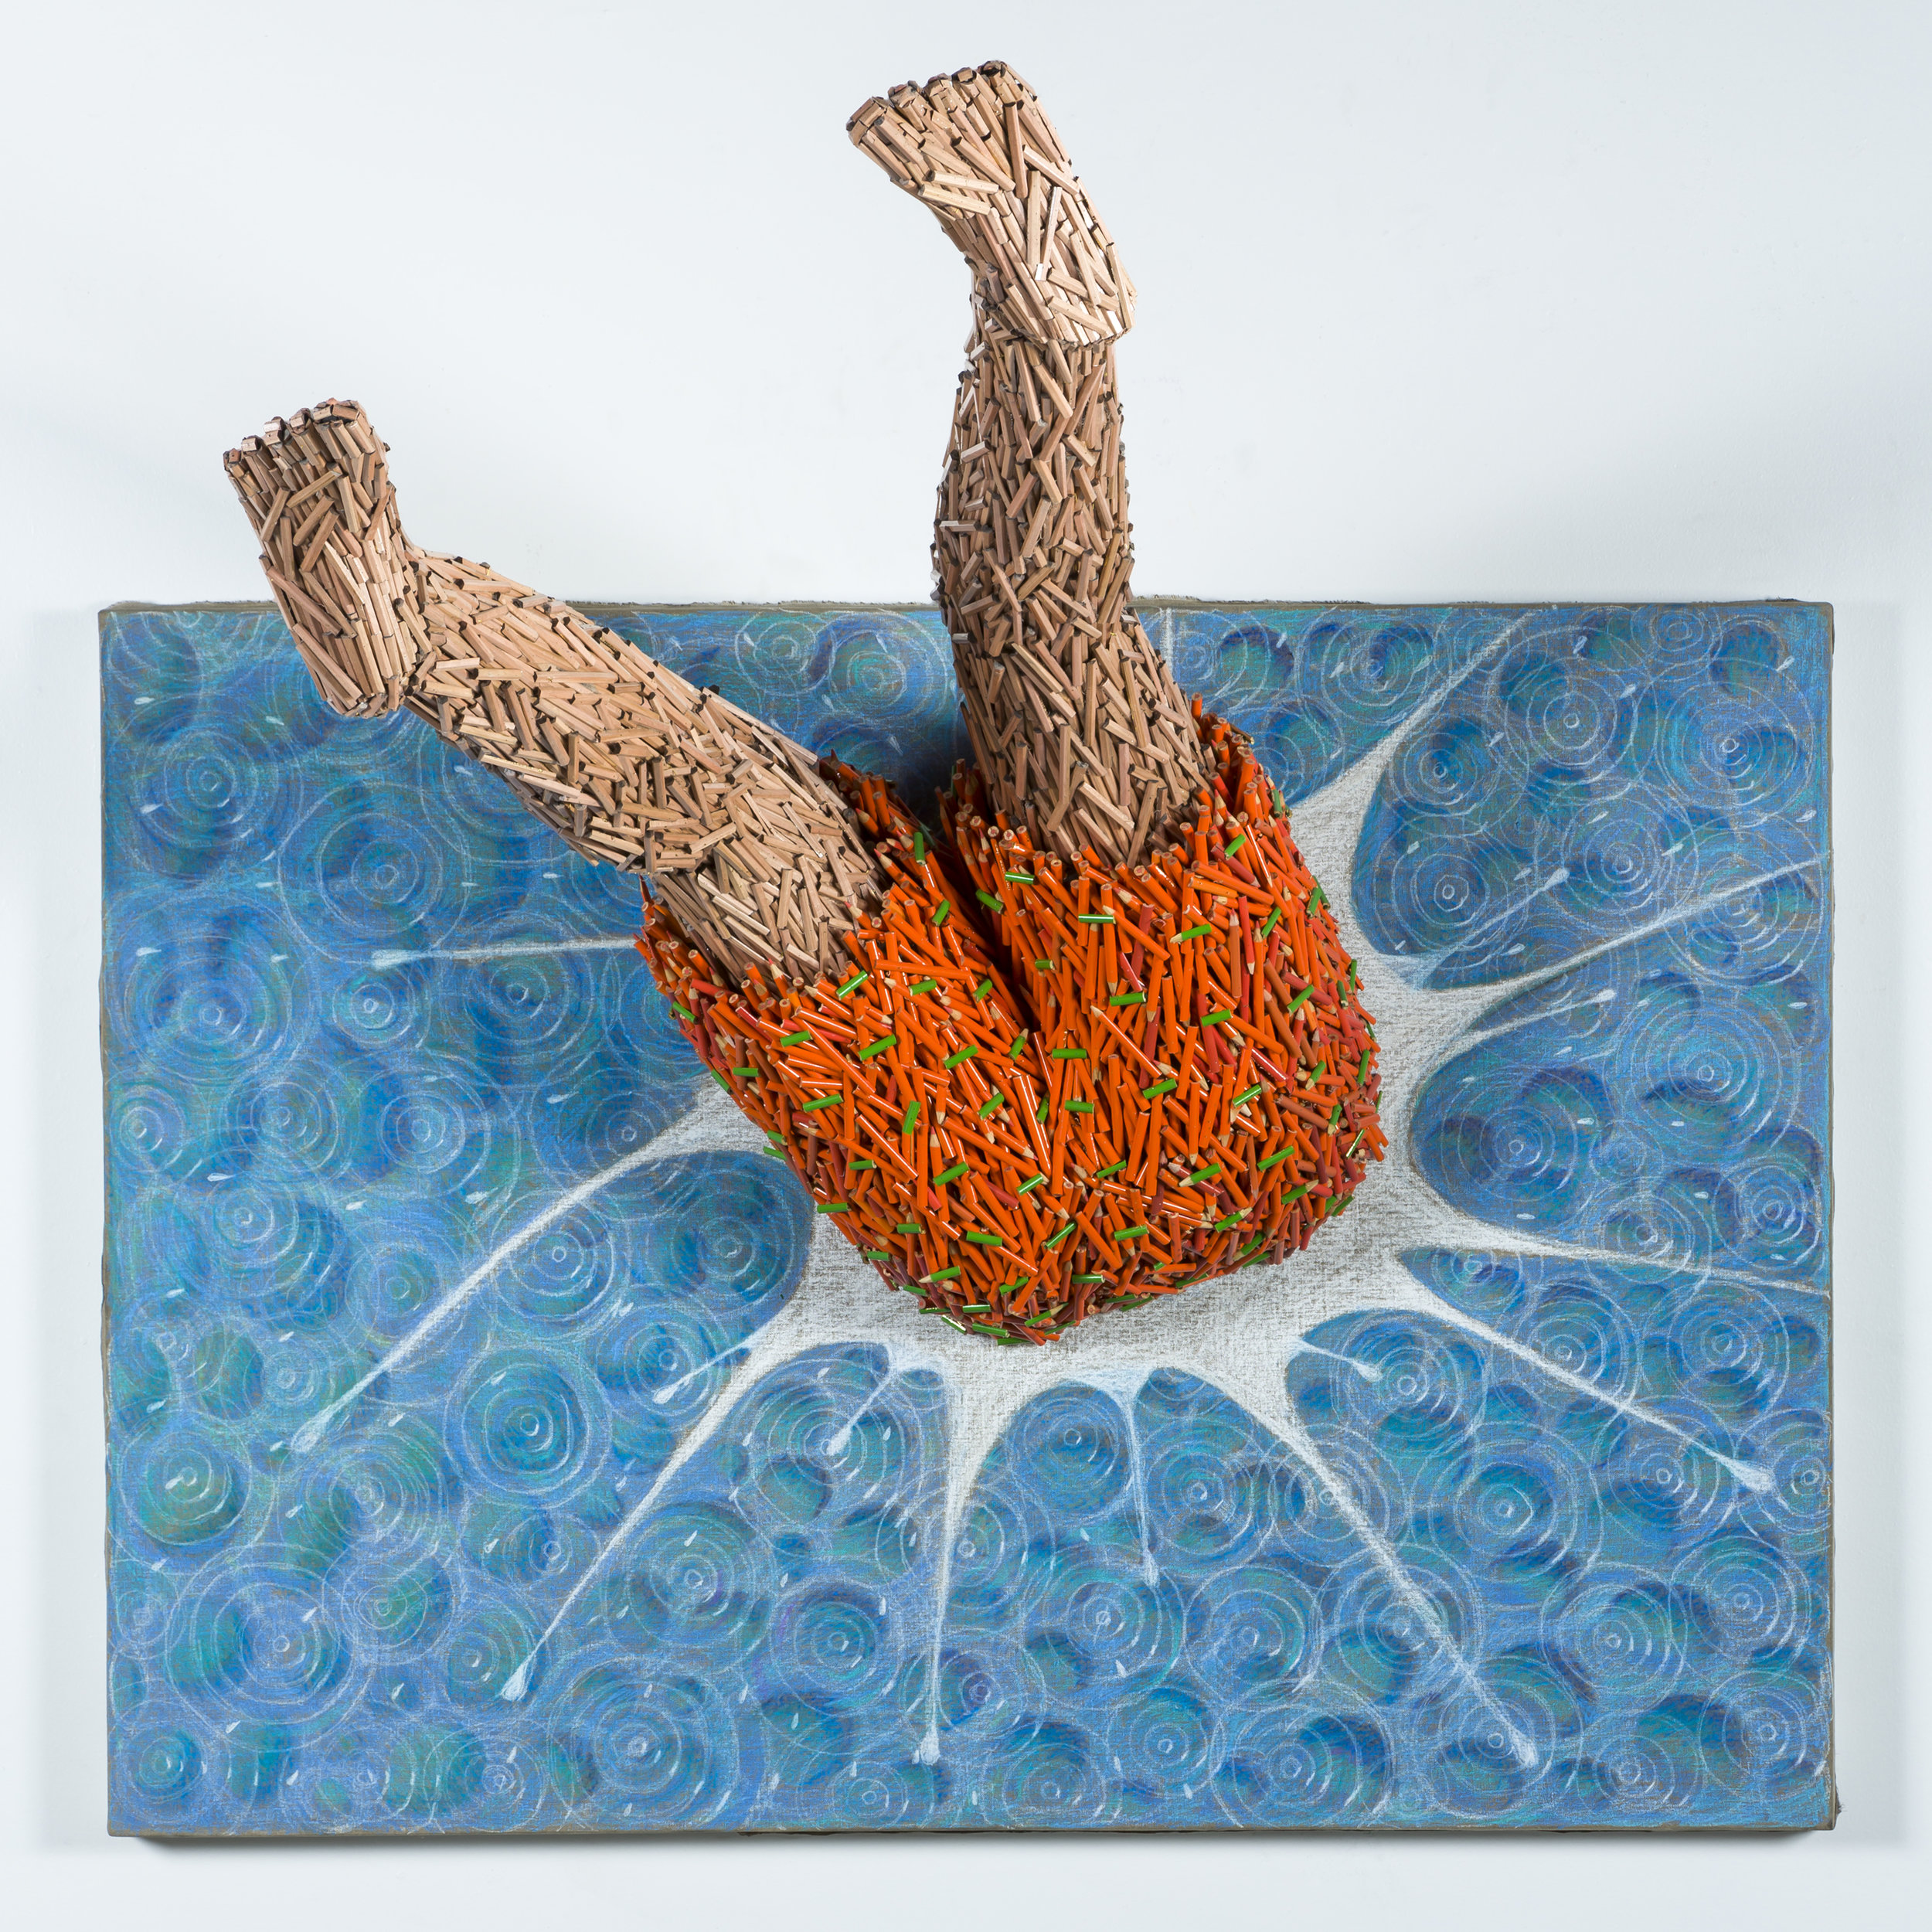 Splash , 2014 Colored pencil collage and drawing 45h x 52w x 38d inches